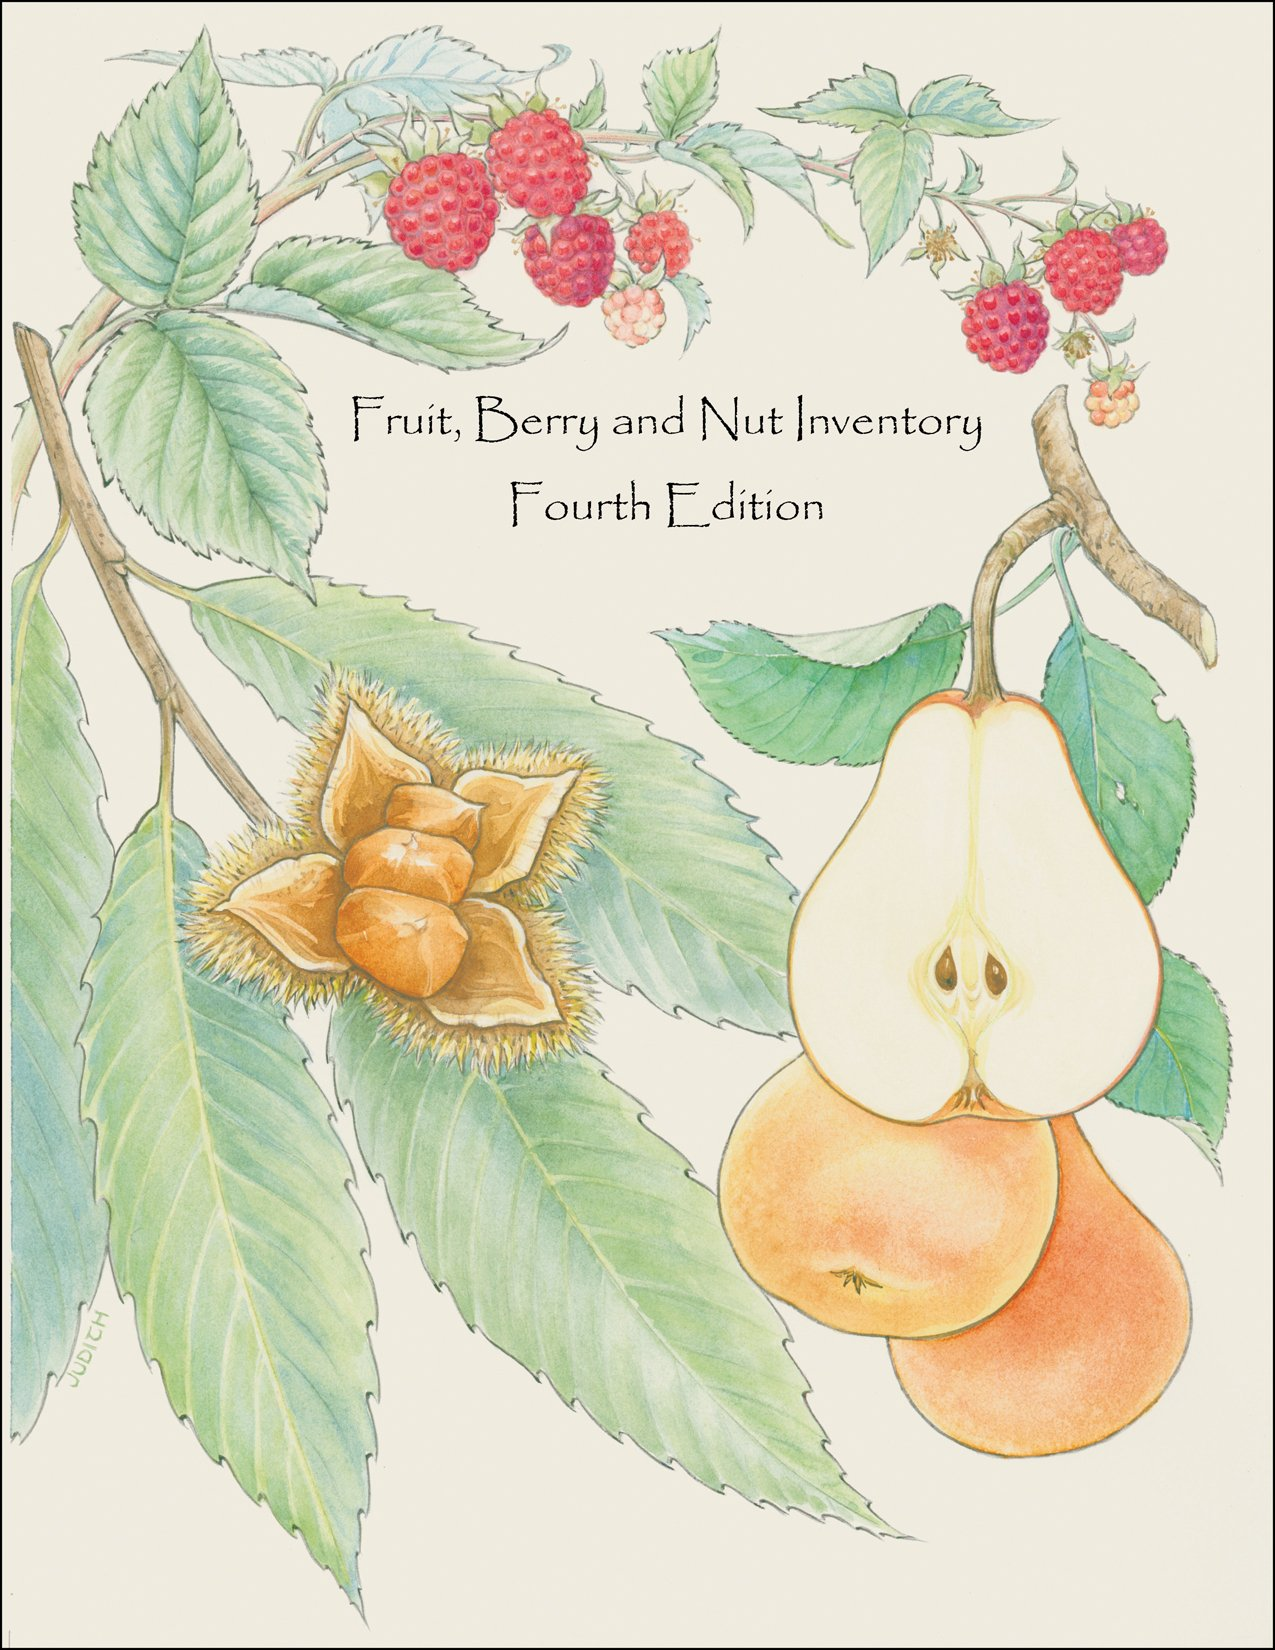 Fruit, Berry and Nut Inventory, 4th edition: An Inventory of Nursery Catalogs and Websites Listing Fruit, Berry and Nut Varieties by Mail Order in the United States by Brand: Seed Savers Exchange